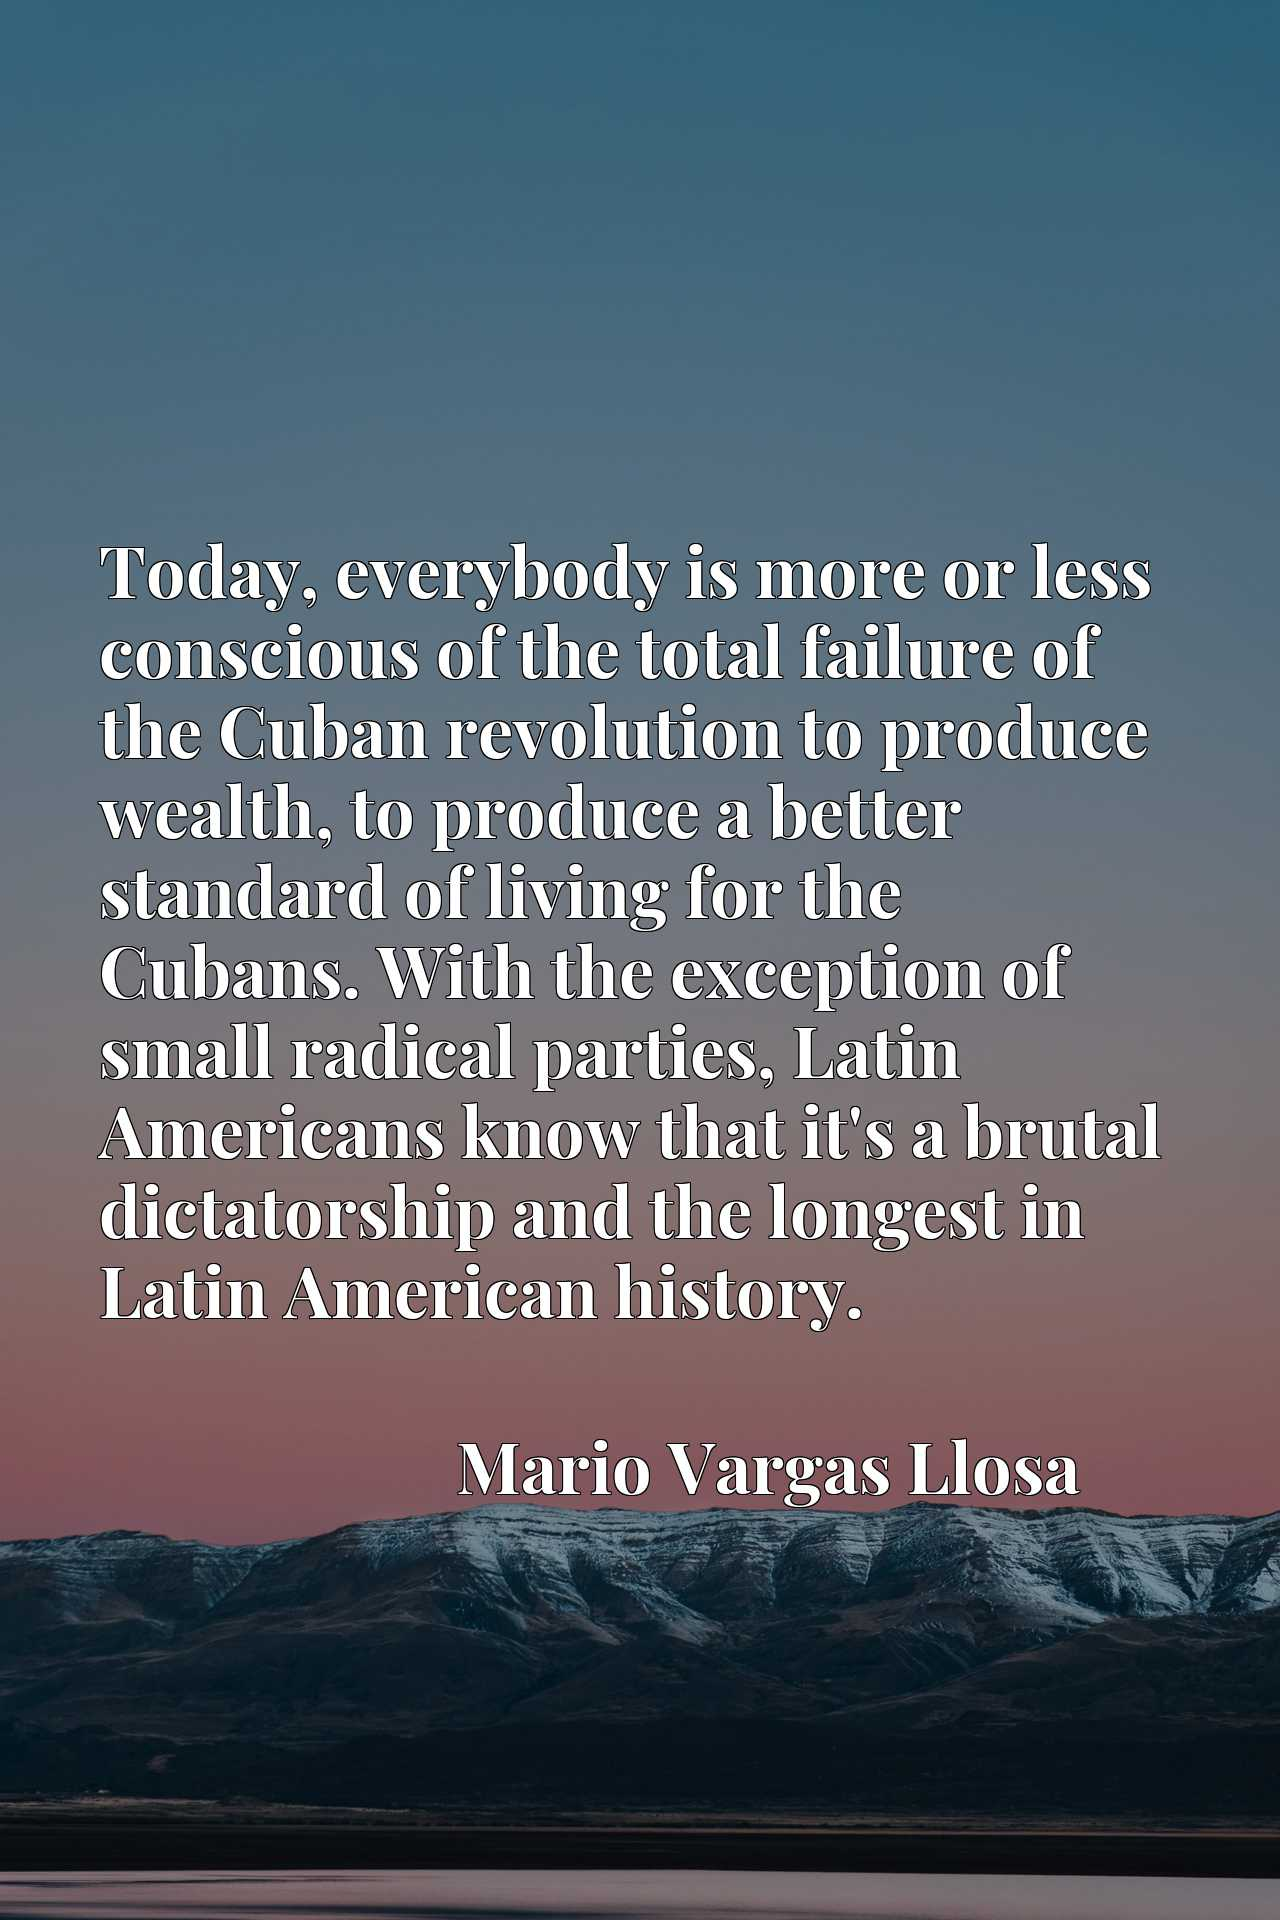 Today, everybody is more or less conscious of the total failure of the Cuban revolution to produce wealth, to produce a better standard of living for the Cubans. With the exception of small radical parties, Latin Americans know that it's a brutal dictatorship and the longest in Latin American history.